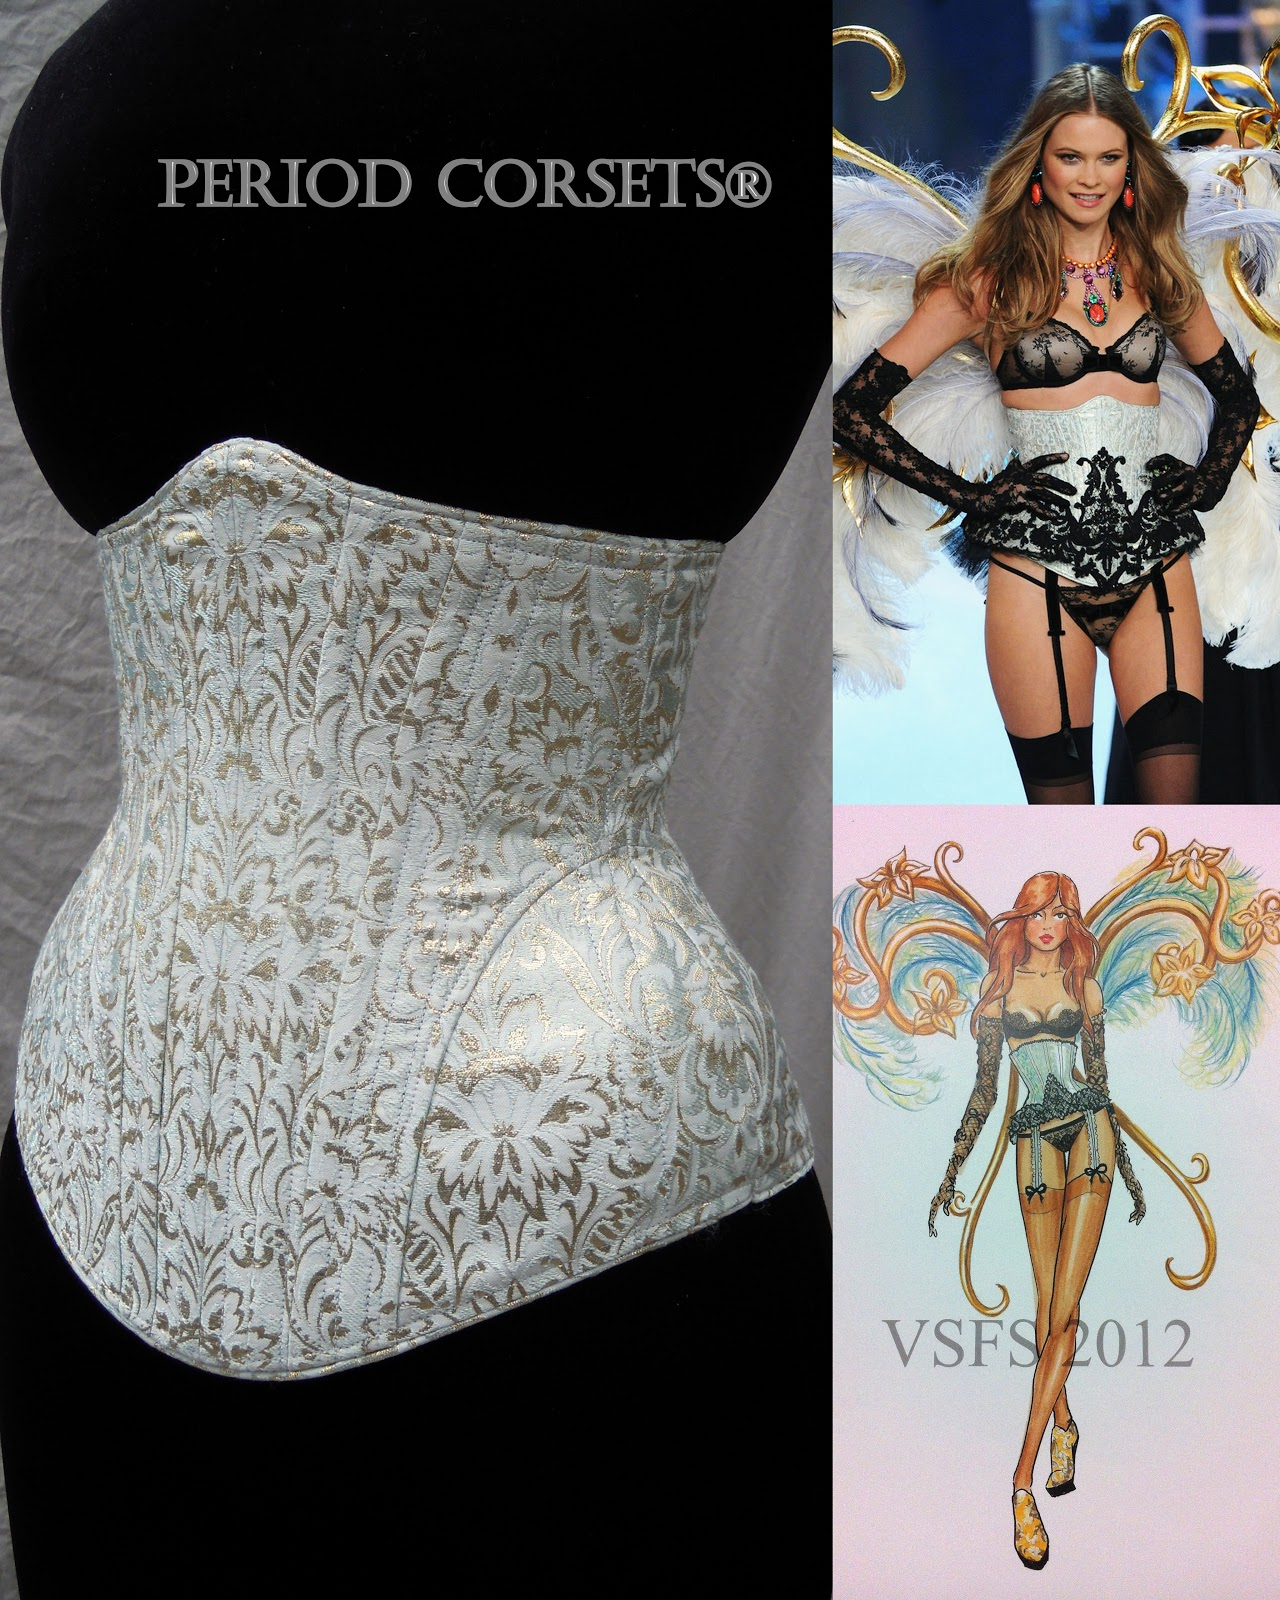 Period Corsets: Victoria's Secret Fashion Show 2012 Corsets made ...